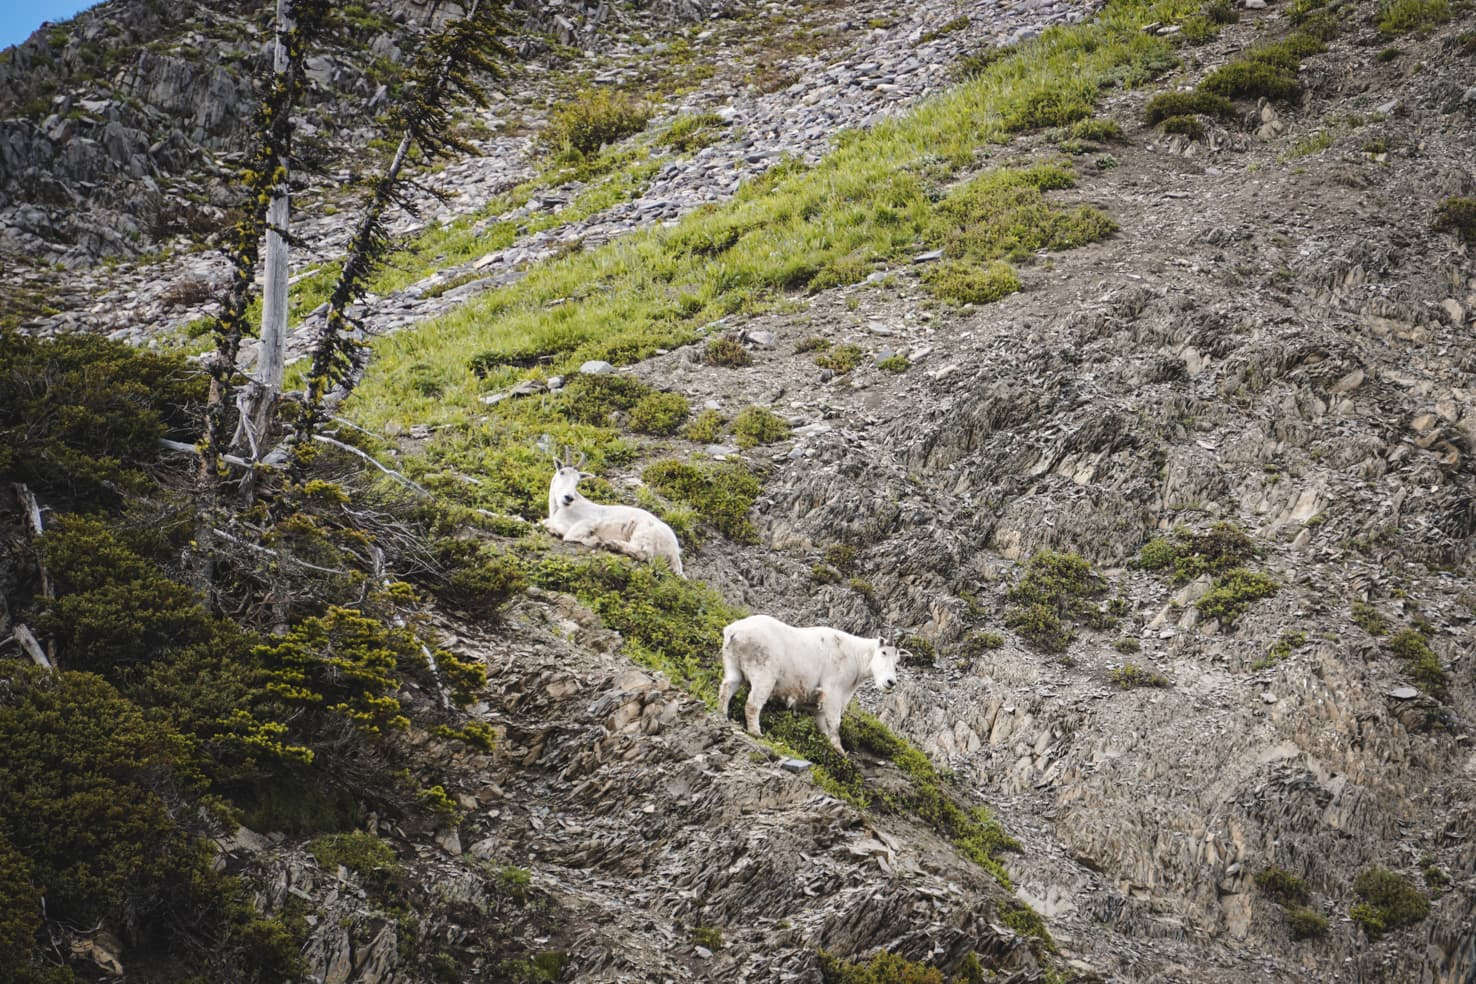 Things to do in Jasper National Park - 51 Watch mountain goats at Goat Lick